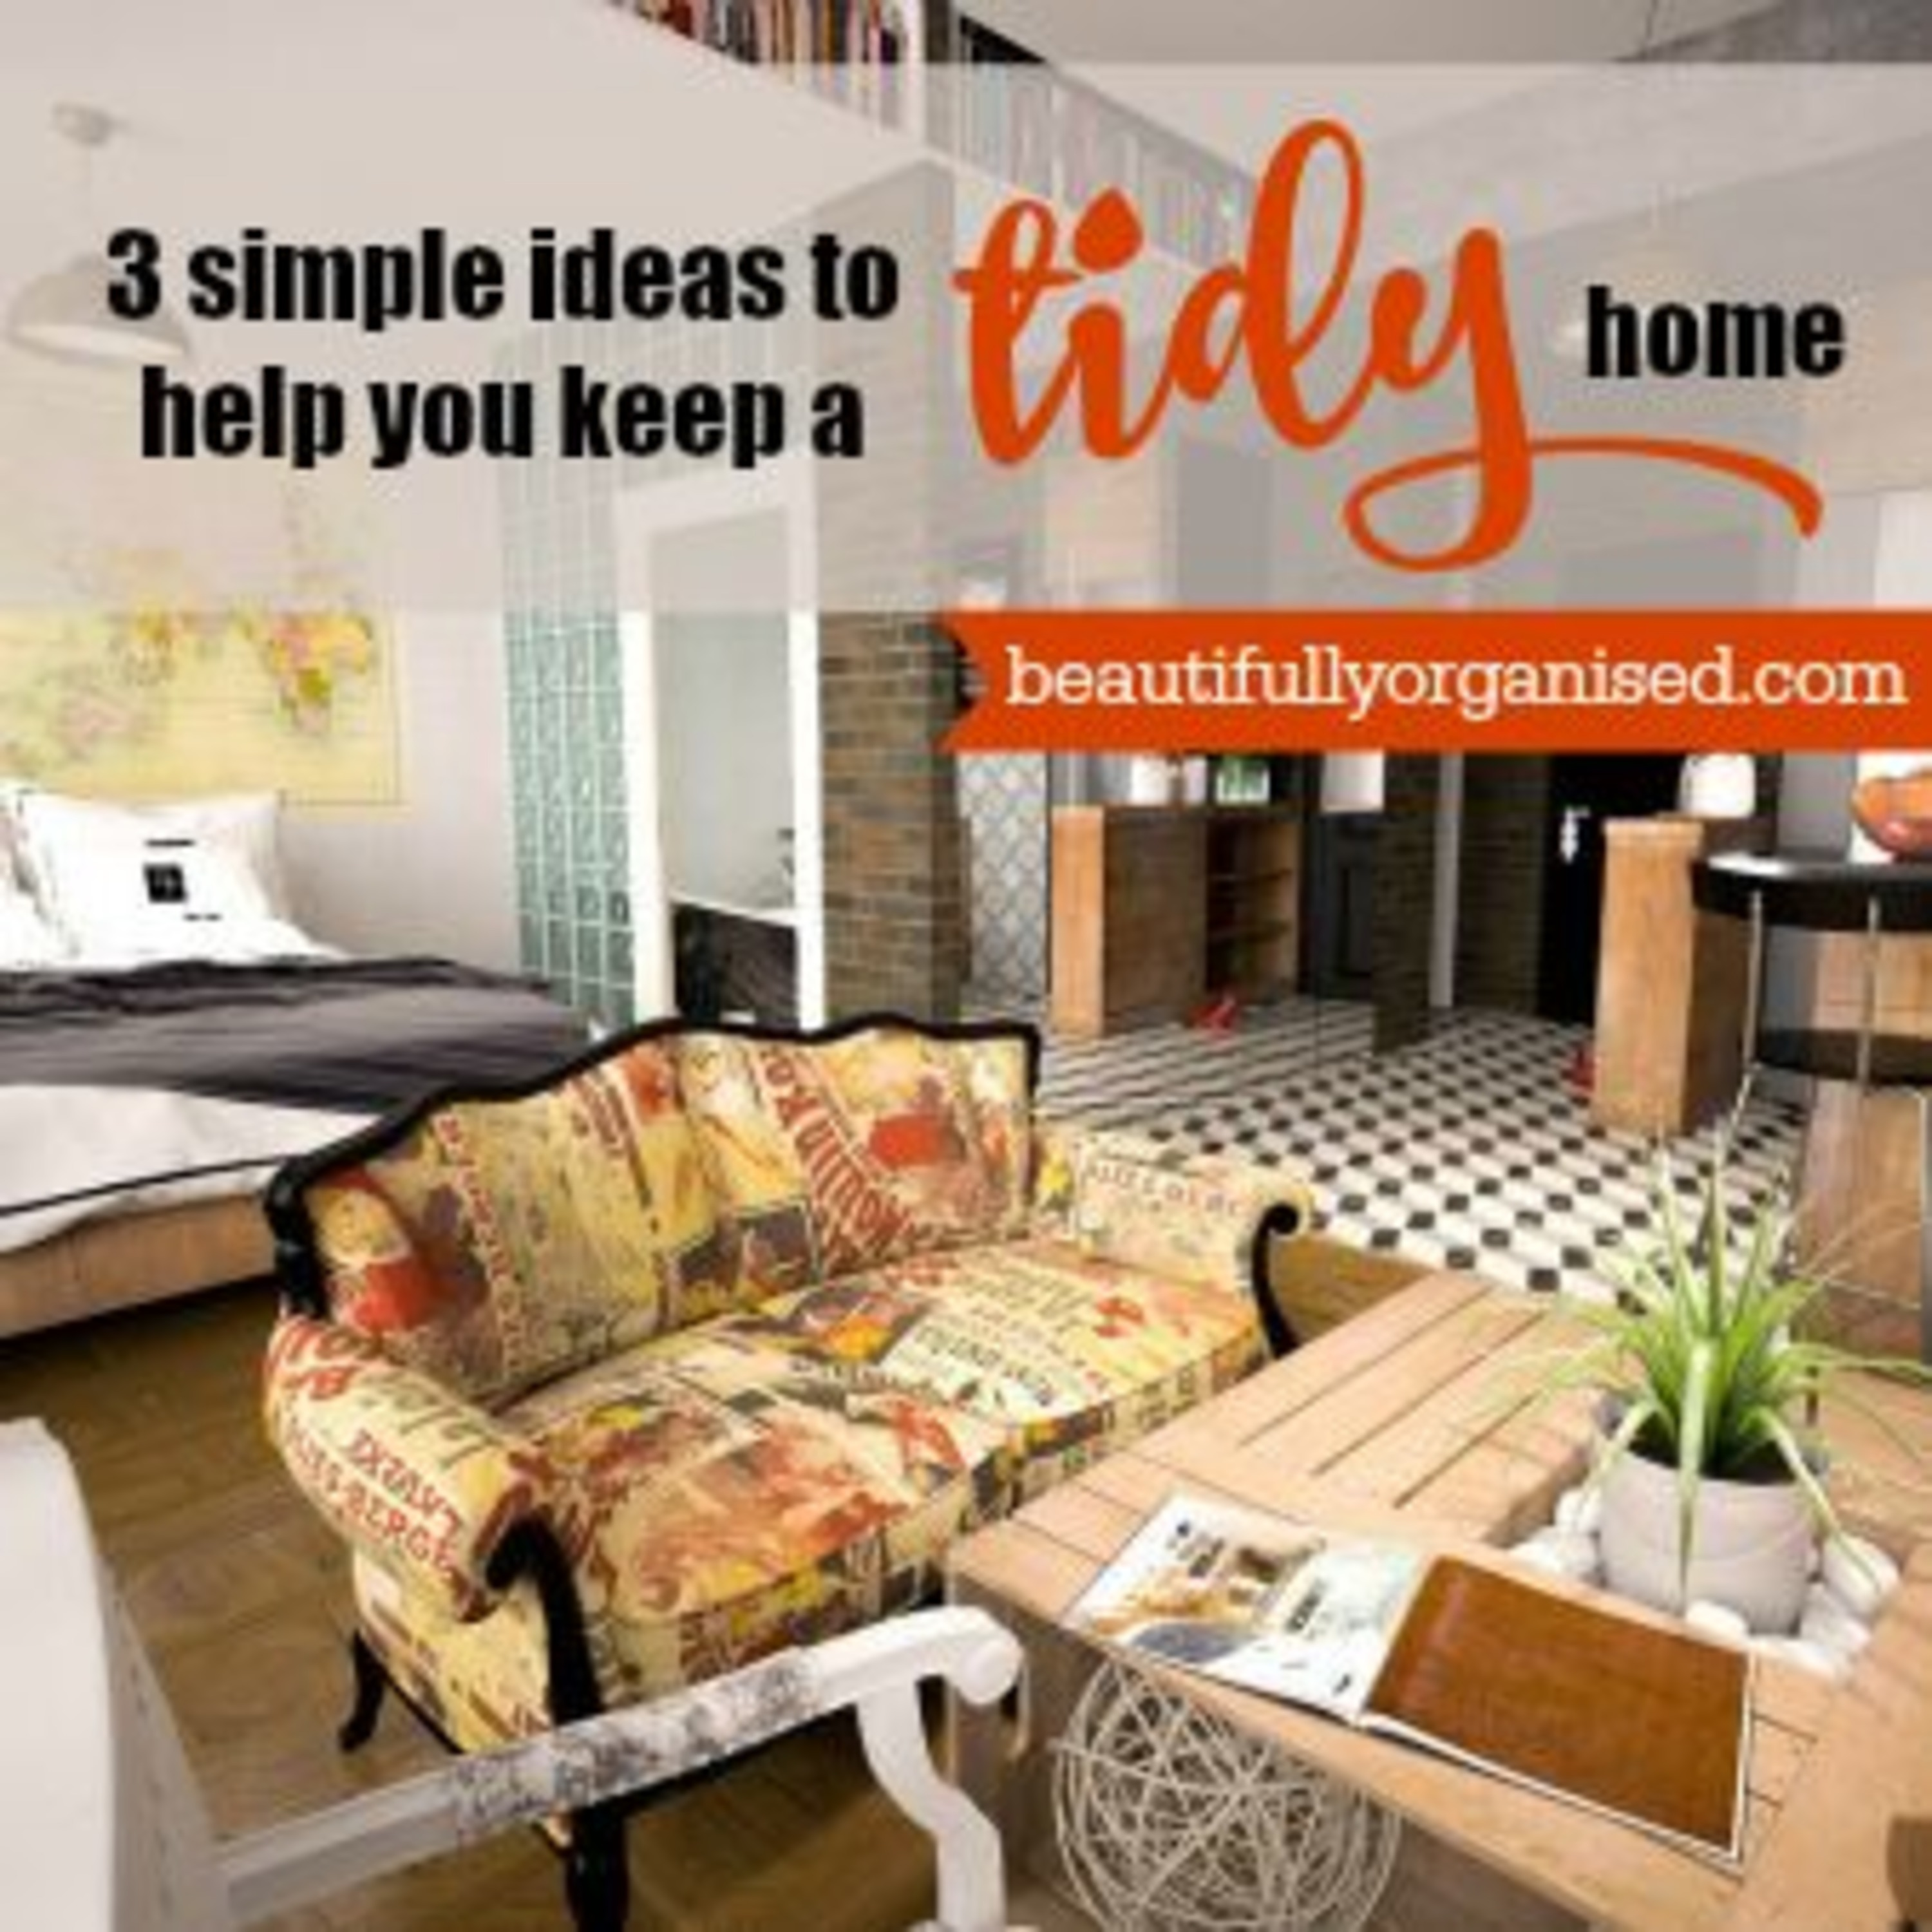 Keep your home tidy easily with these 3 simple ideas